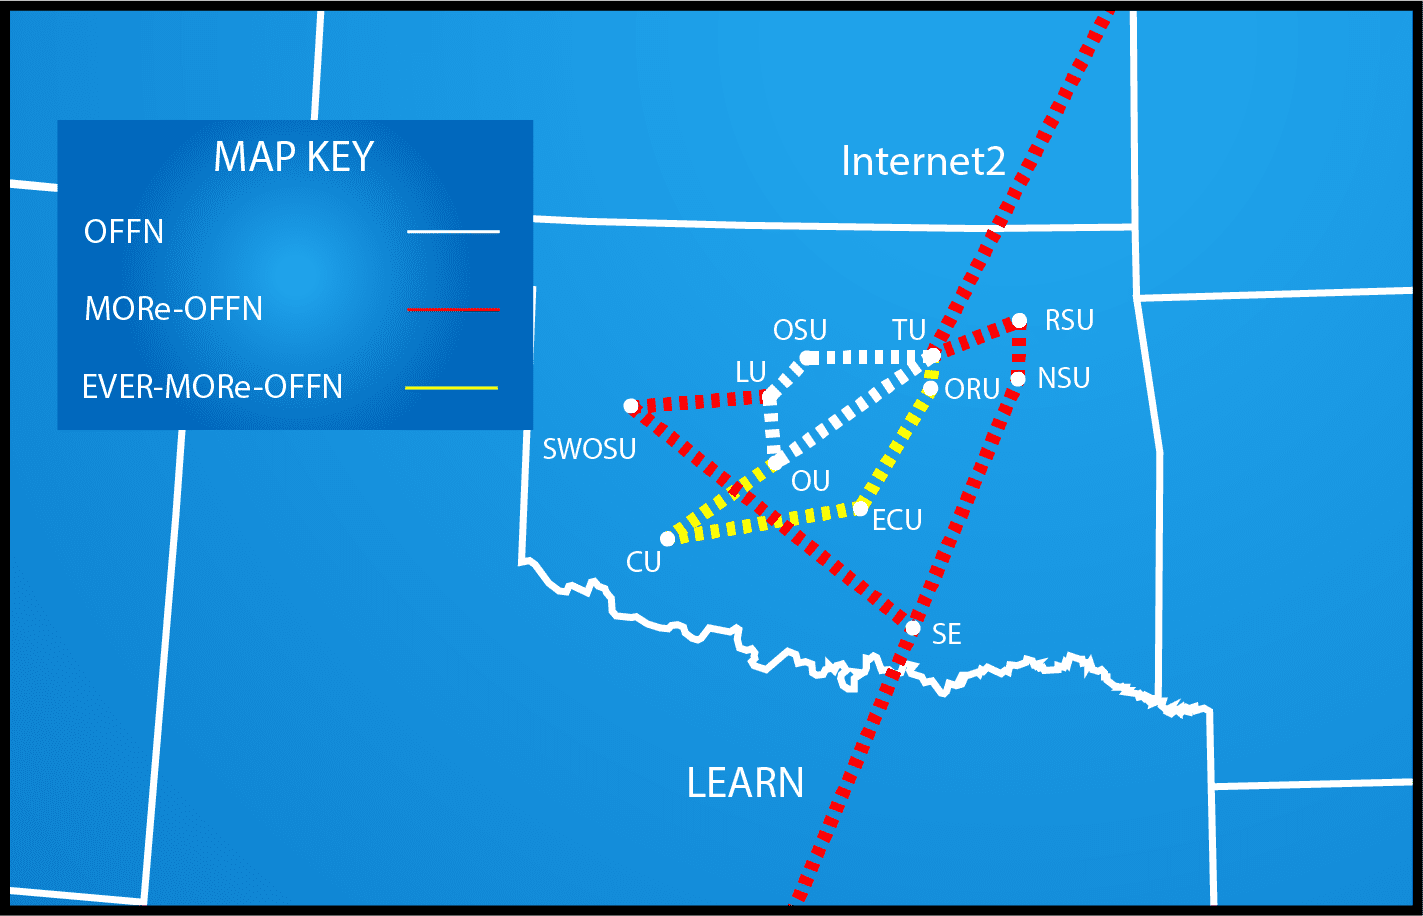 Map showing grant networks